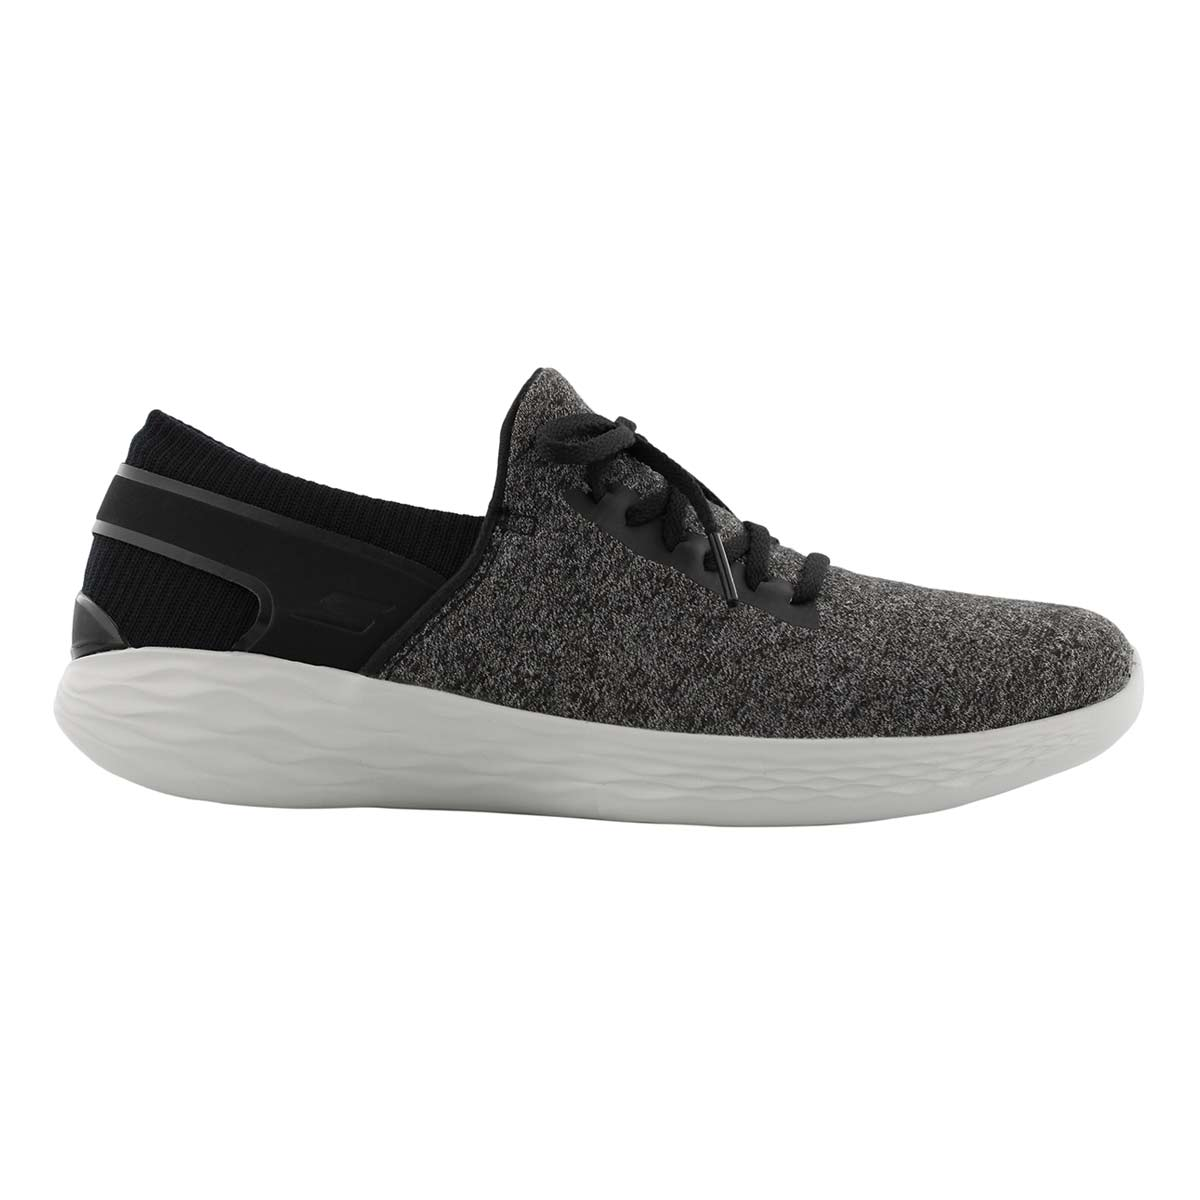 Lds YOU Ambiance blk/gy lace slipon snkr